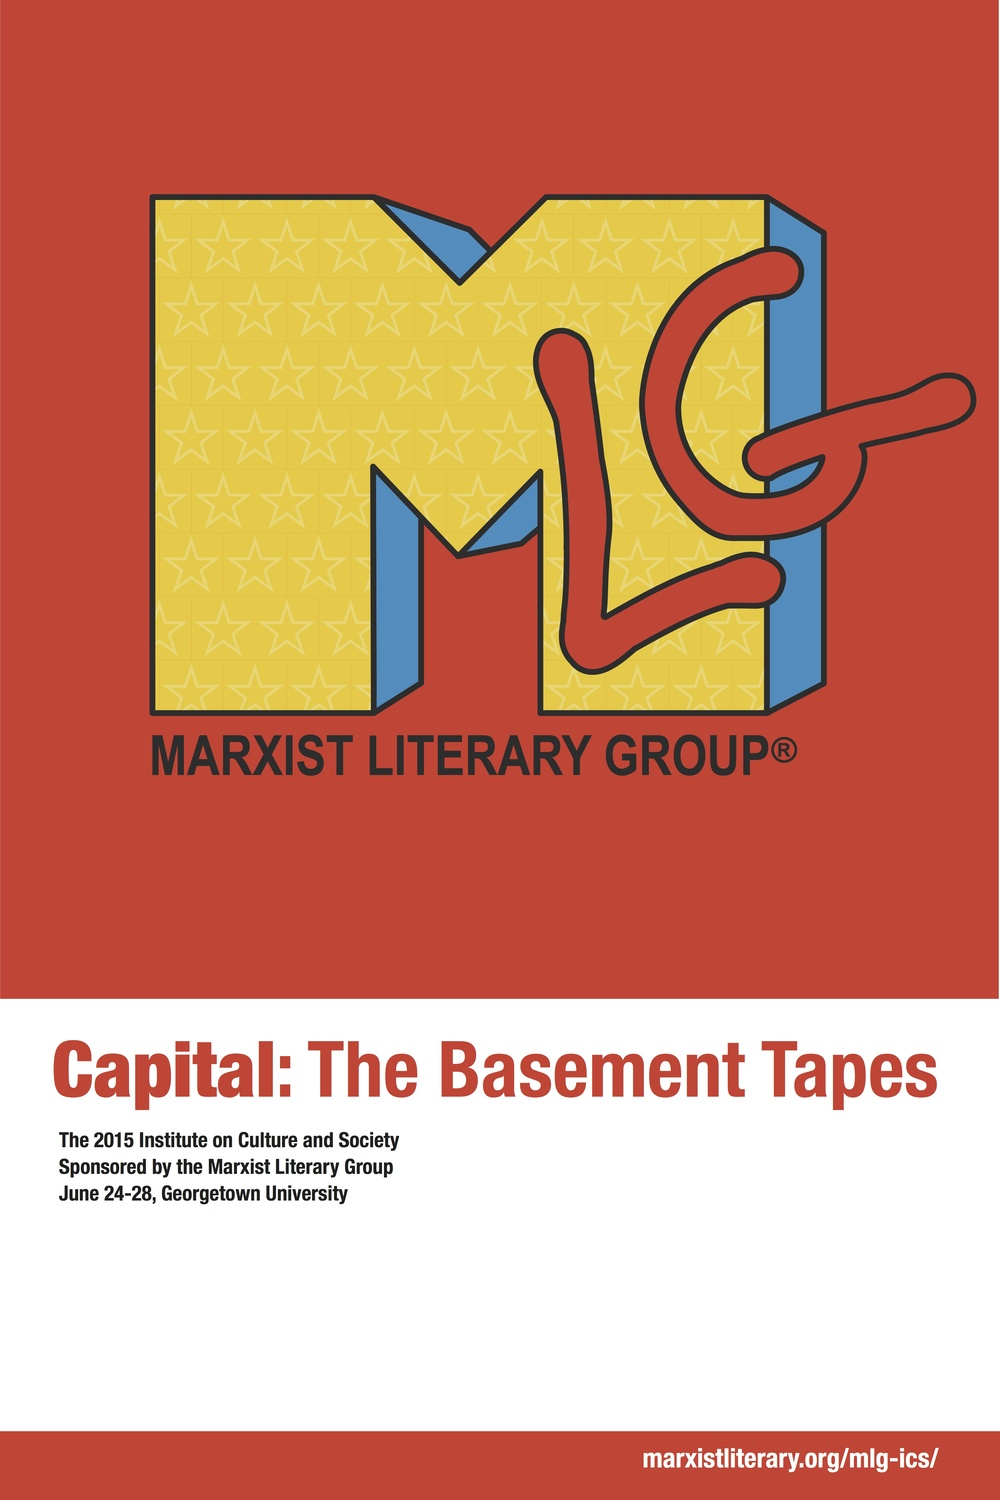 MLG-BasementTapes_poster_largeProVert_rev1.jpg